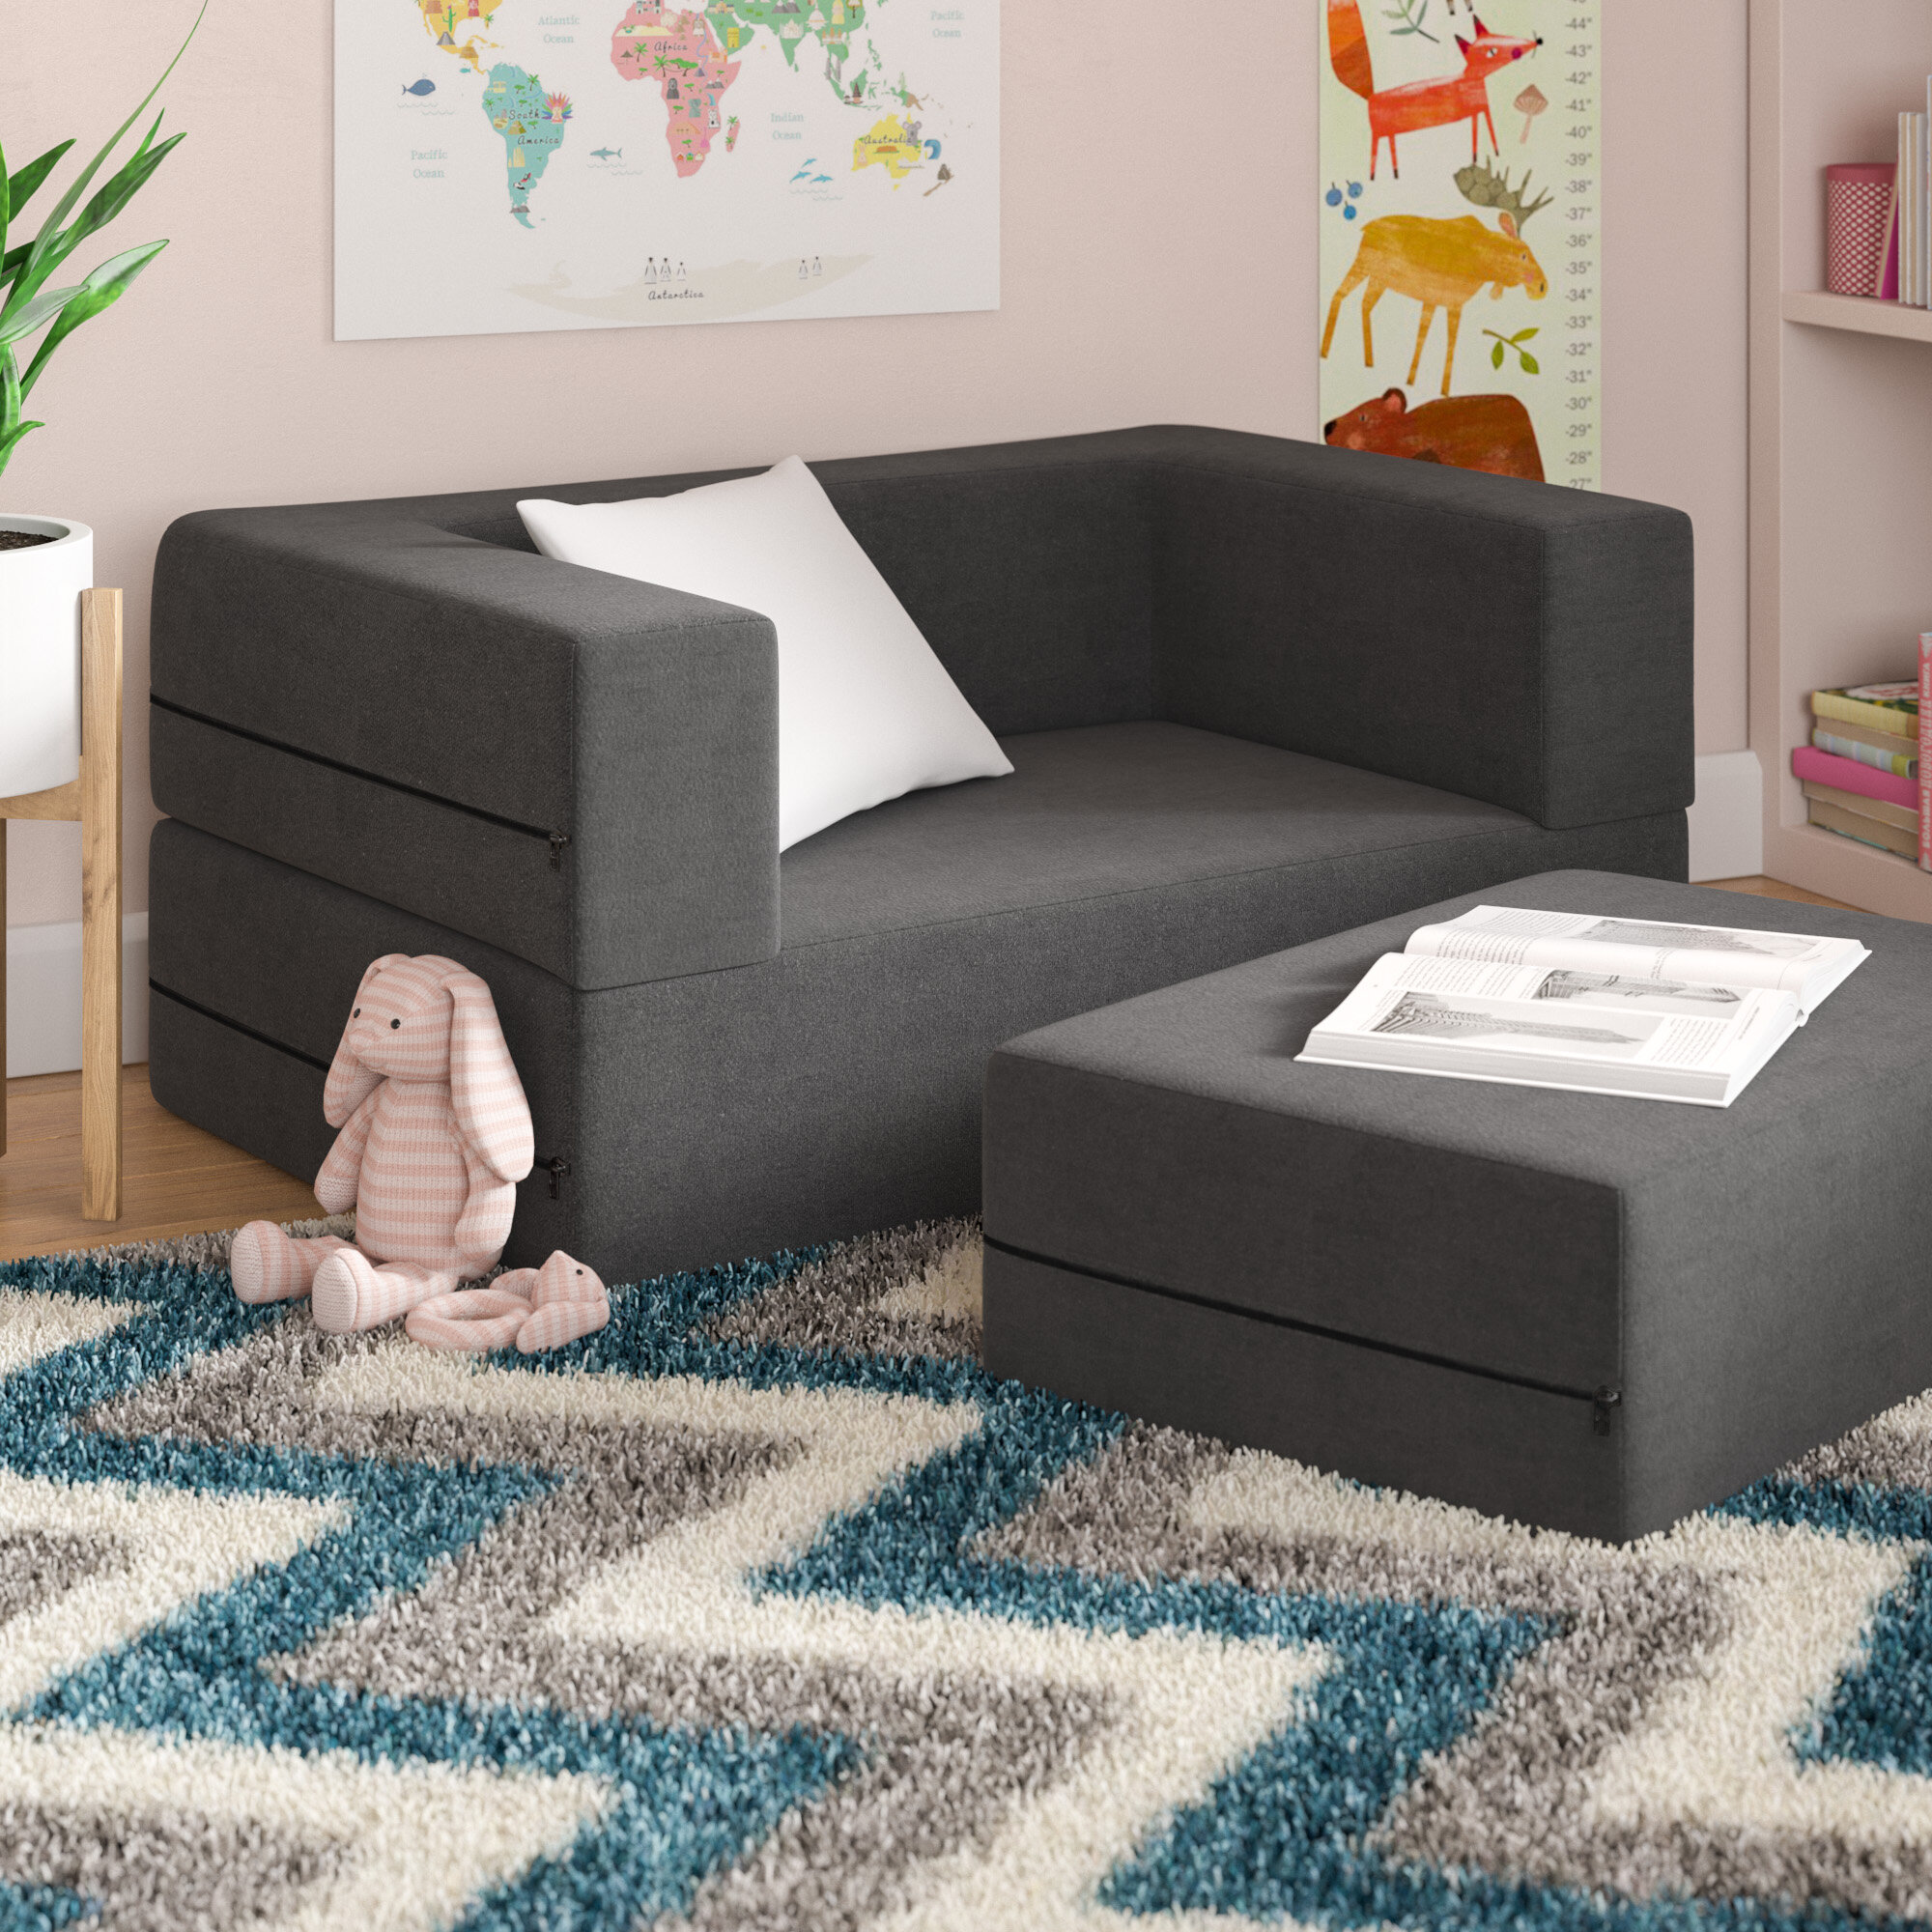 and sized part from of diy bed kid beds couch construction tutorial my daydream reality fainting embryos inspiration sawdust toddler more site